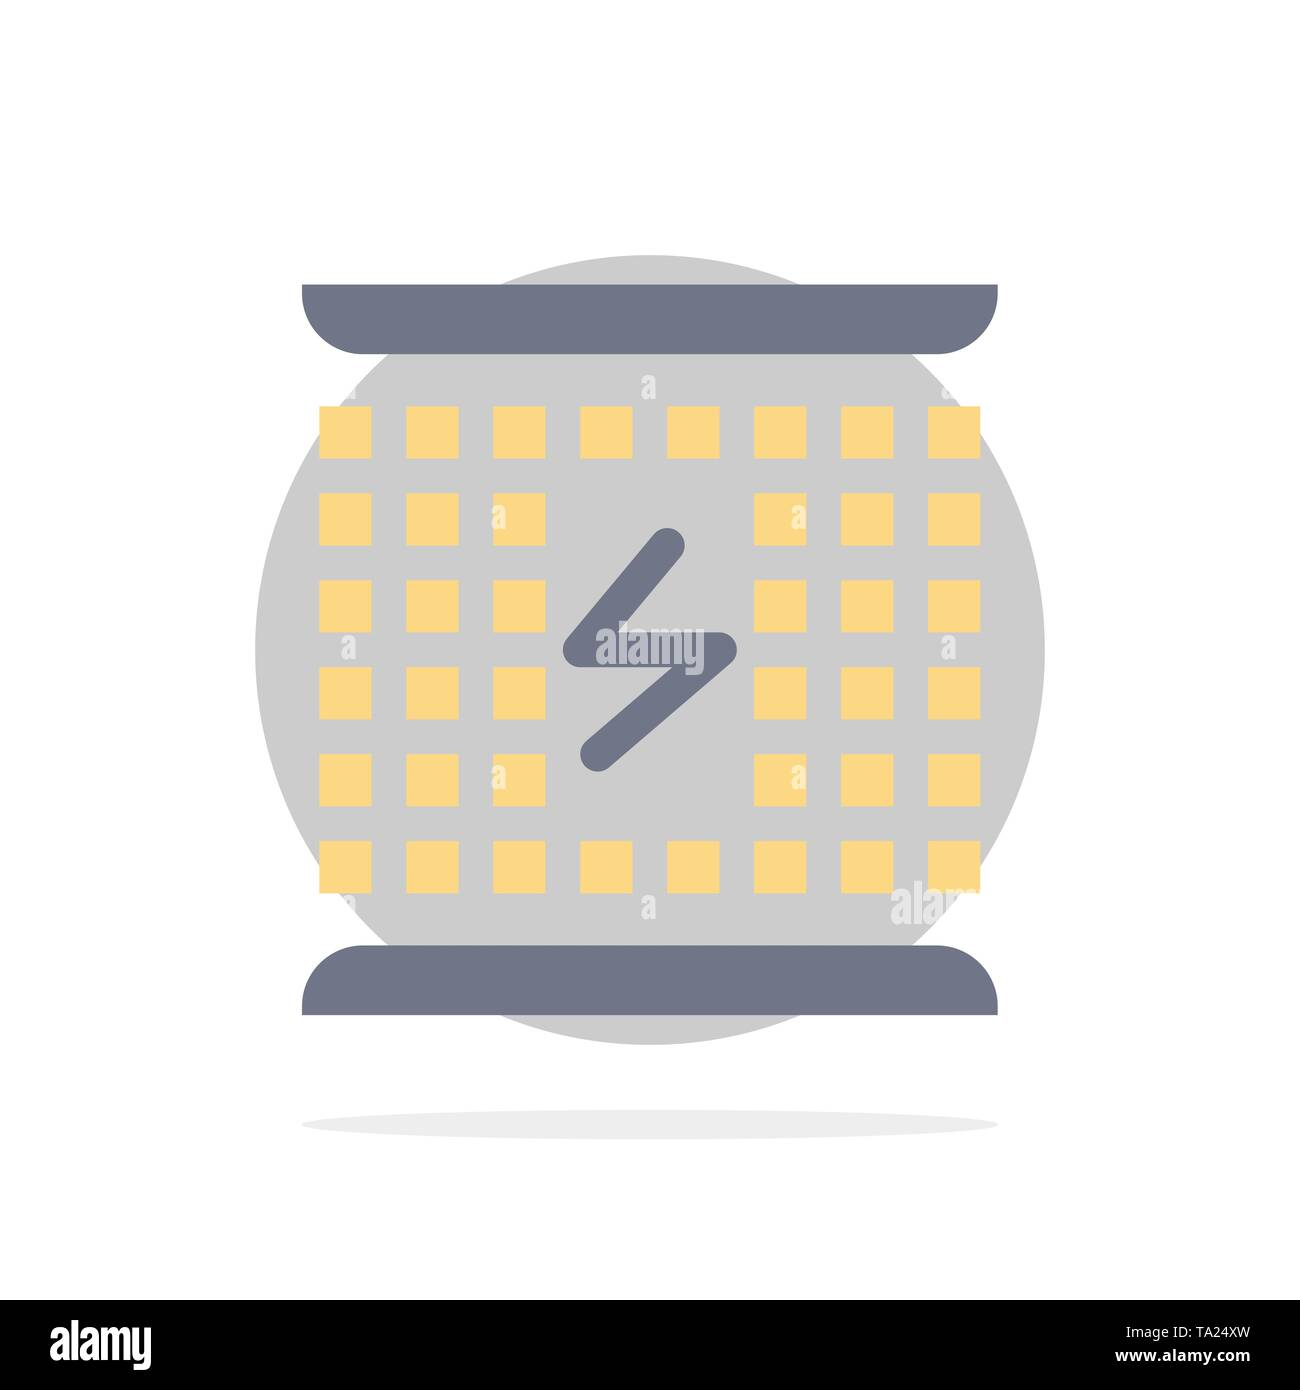 Charge, Charging, Electricity, Electromagnetic, Energy Abstract Circle Background Flat color Icon - Stock Image